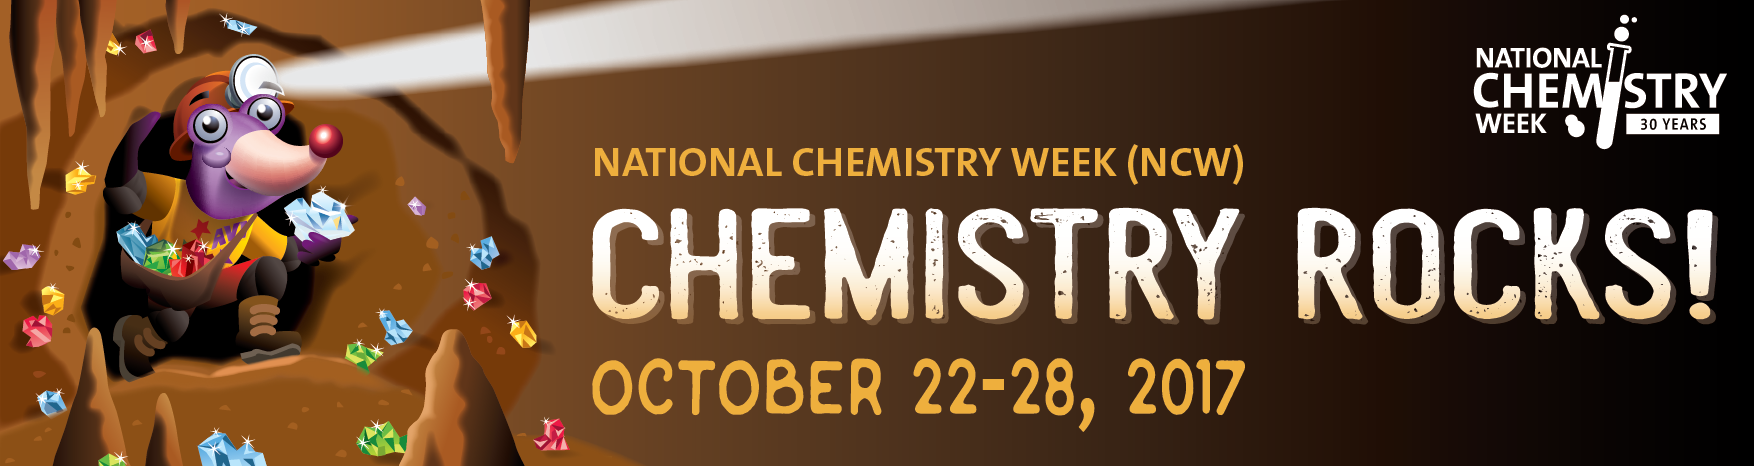 National Chemistry Week (NCW) - Chemistry Rocks - October 22-28 2017